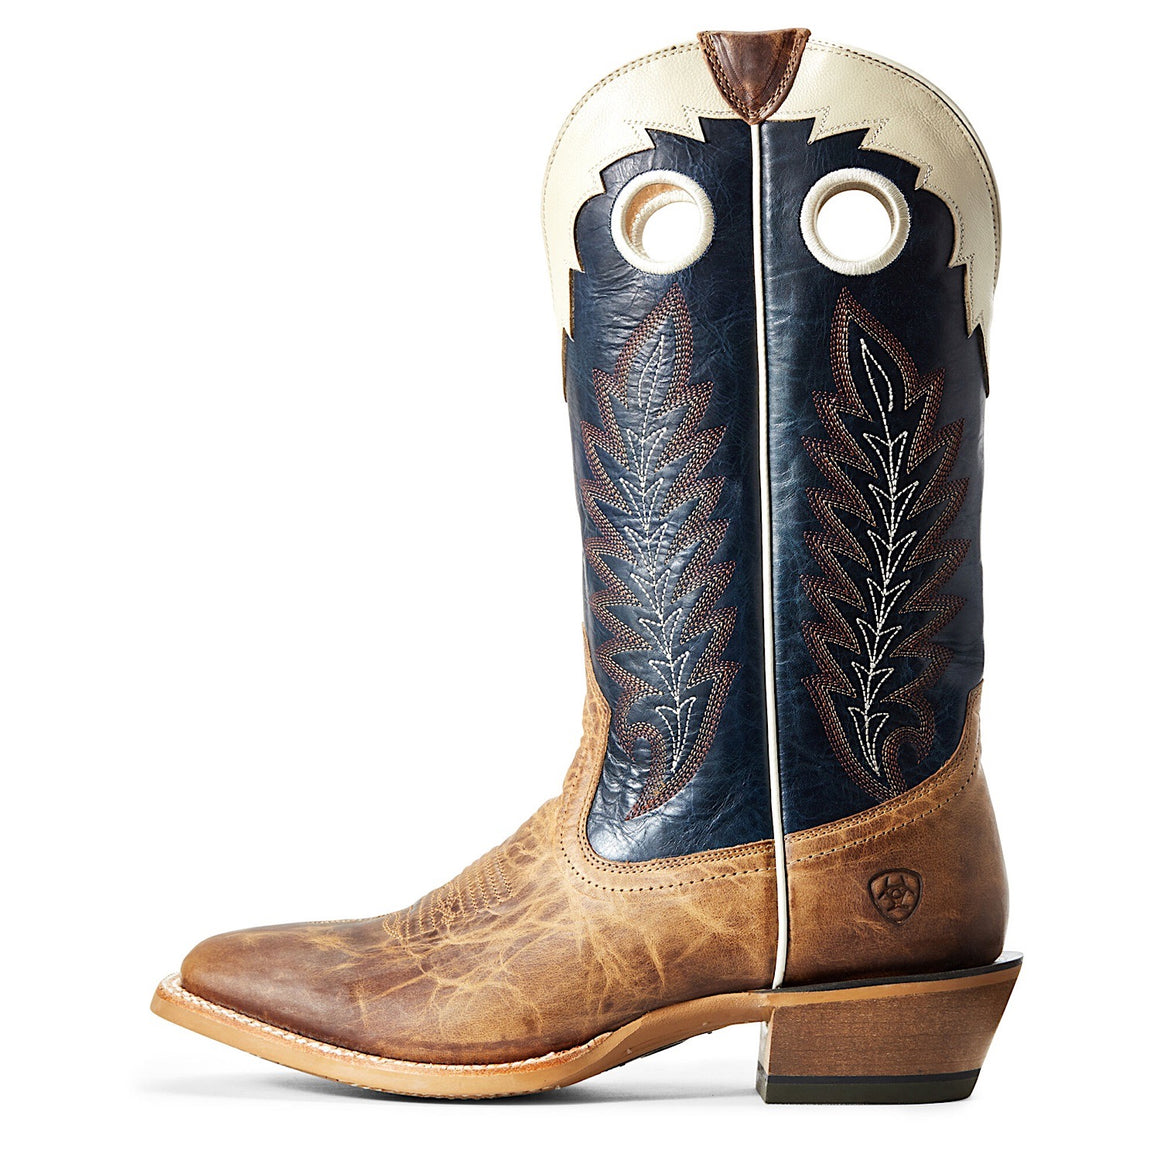 Ariat Mens Real Deal Western Boot Dusted Wheat/Navy